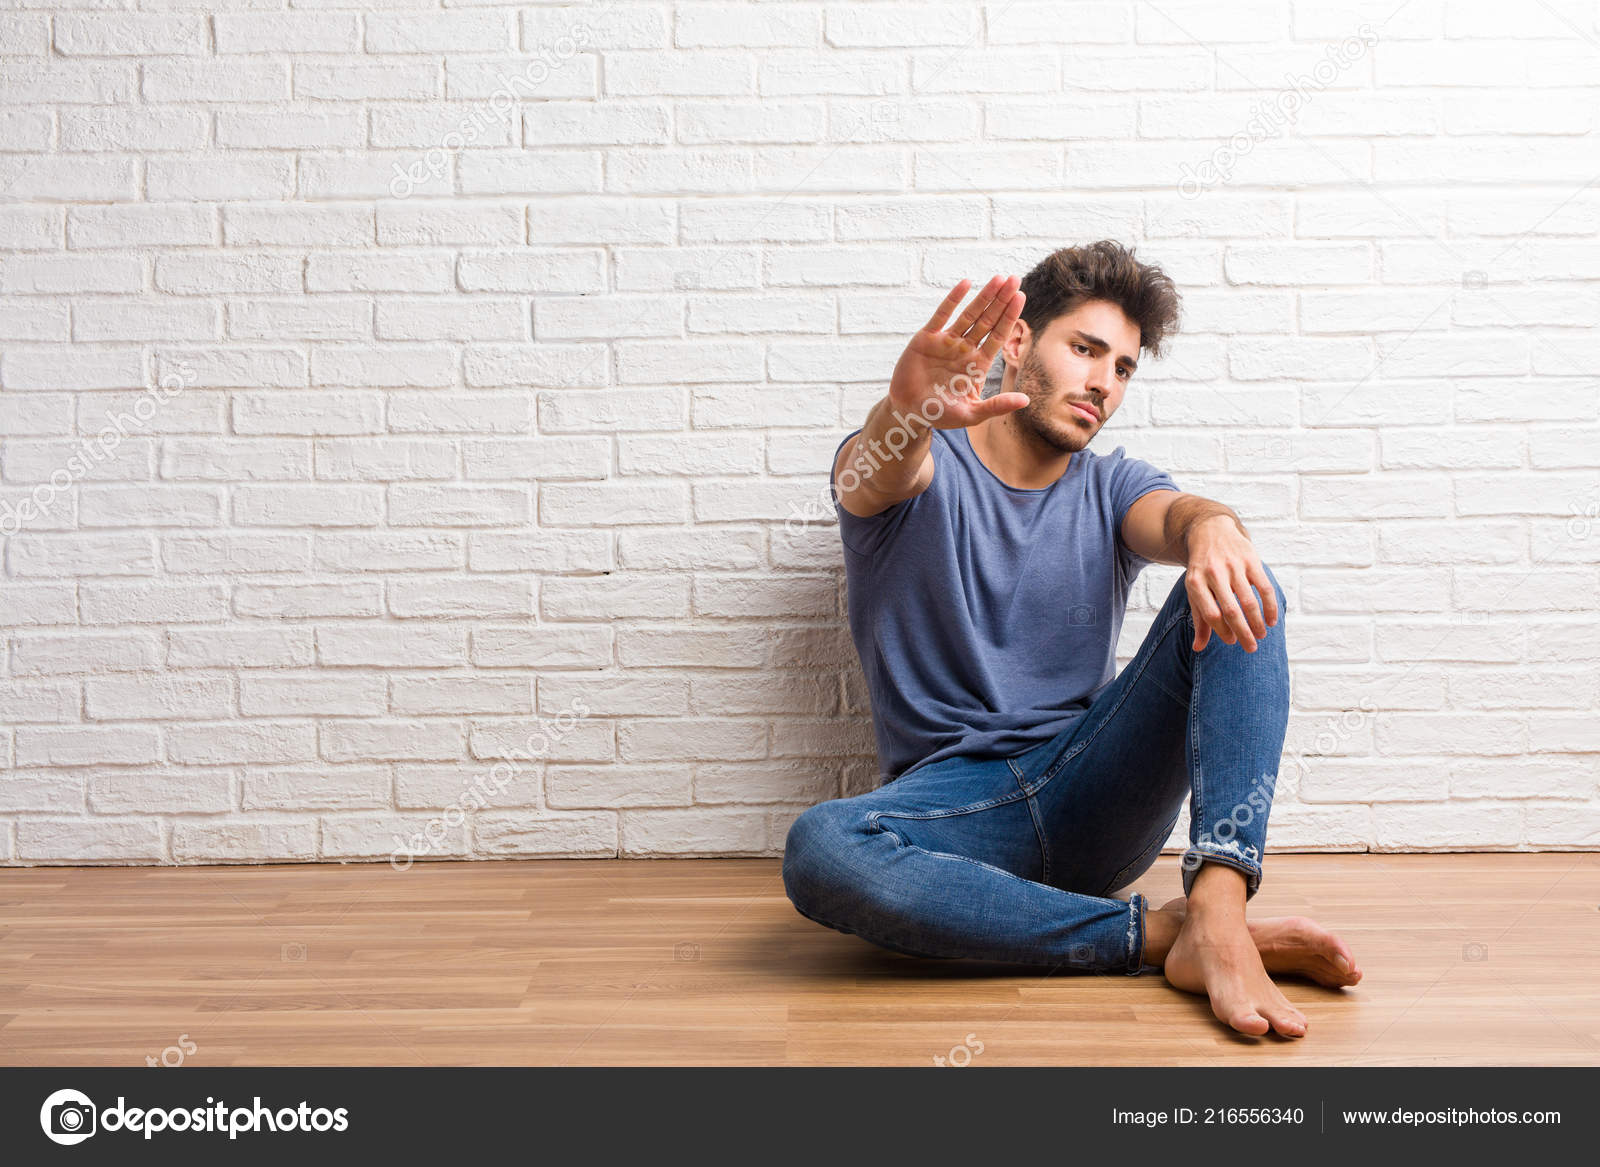 Young Natural Man Sit Wooden Floor